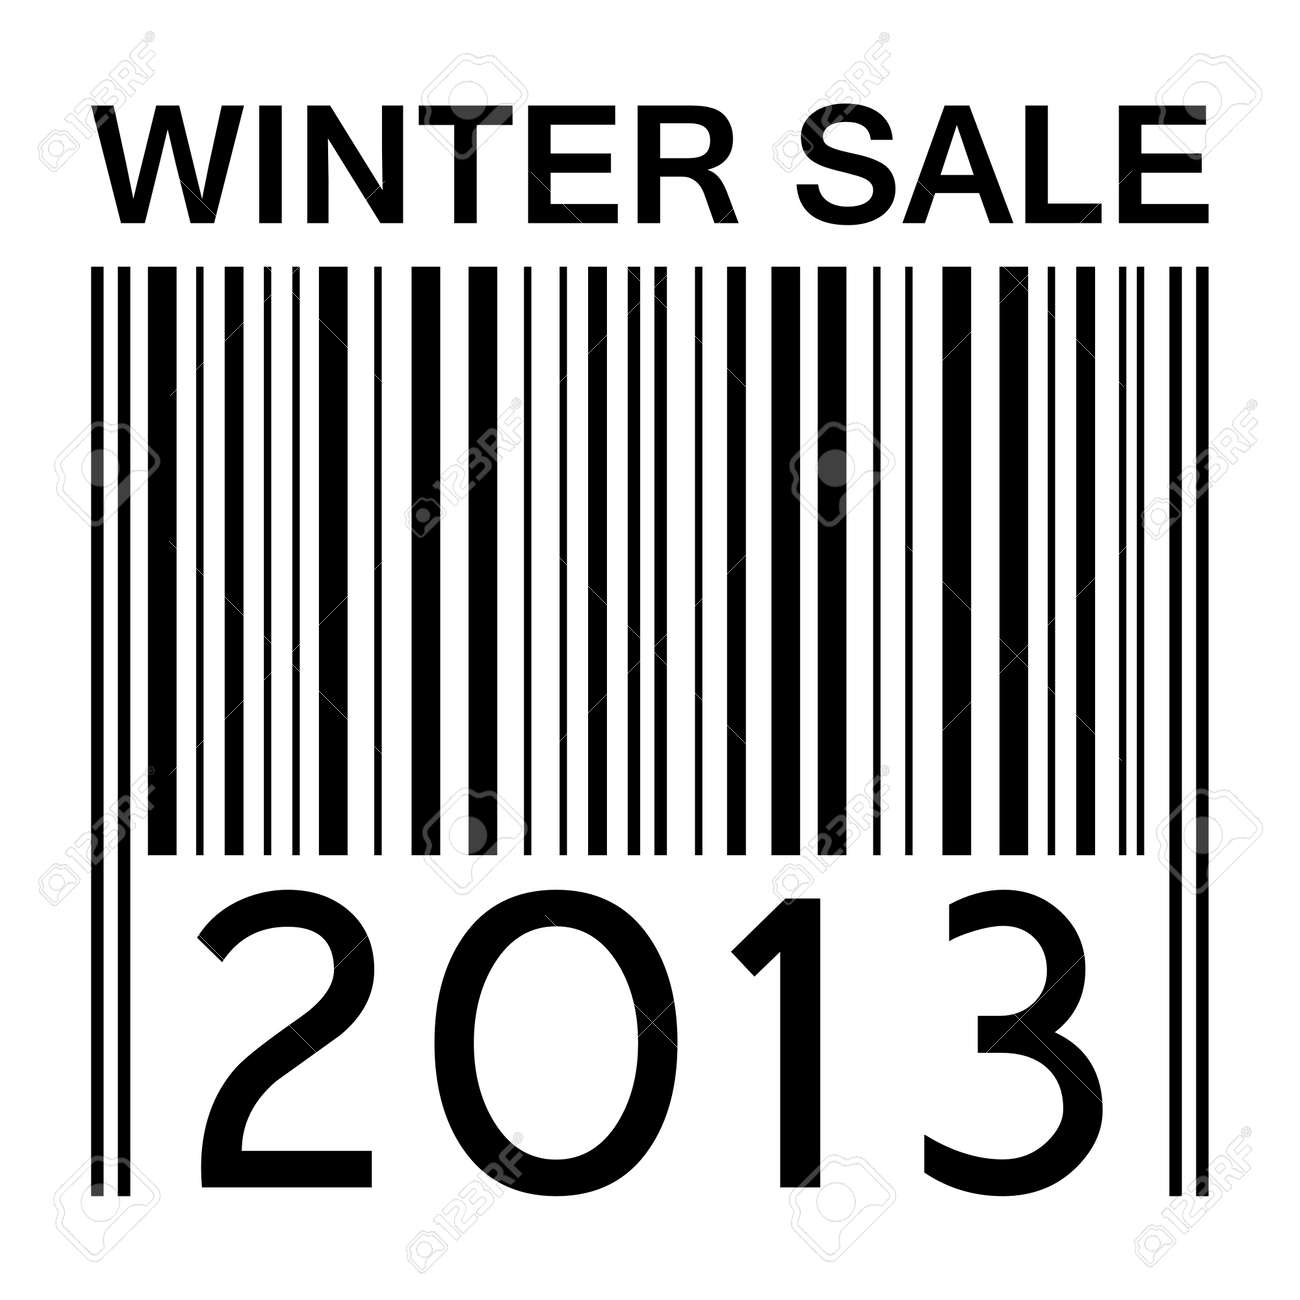 winter sale  banner with barcode Stock Photo - 17066736